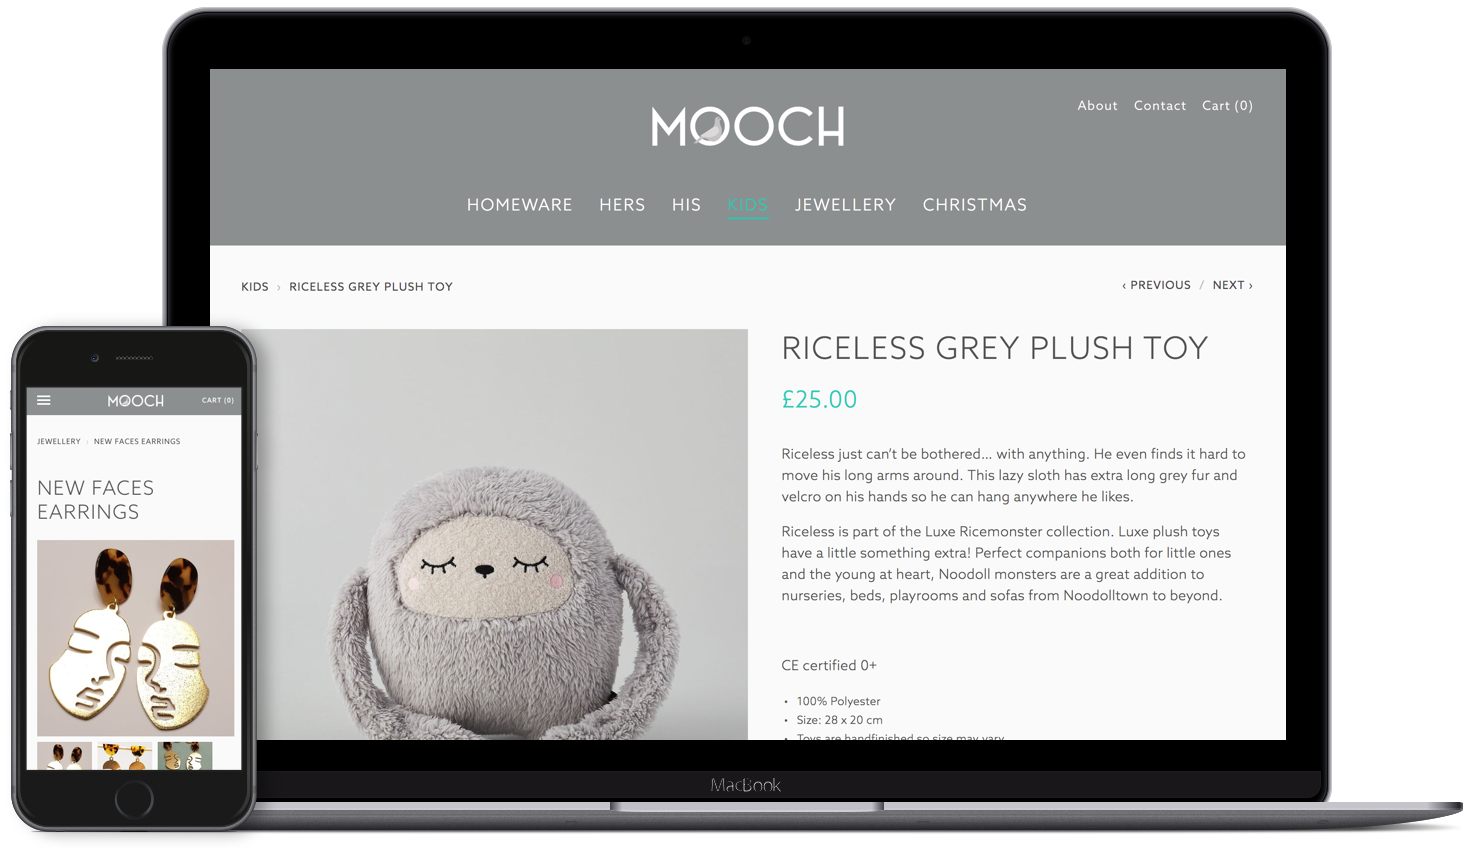 Mooch-Multi-Device ecommerce.png